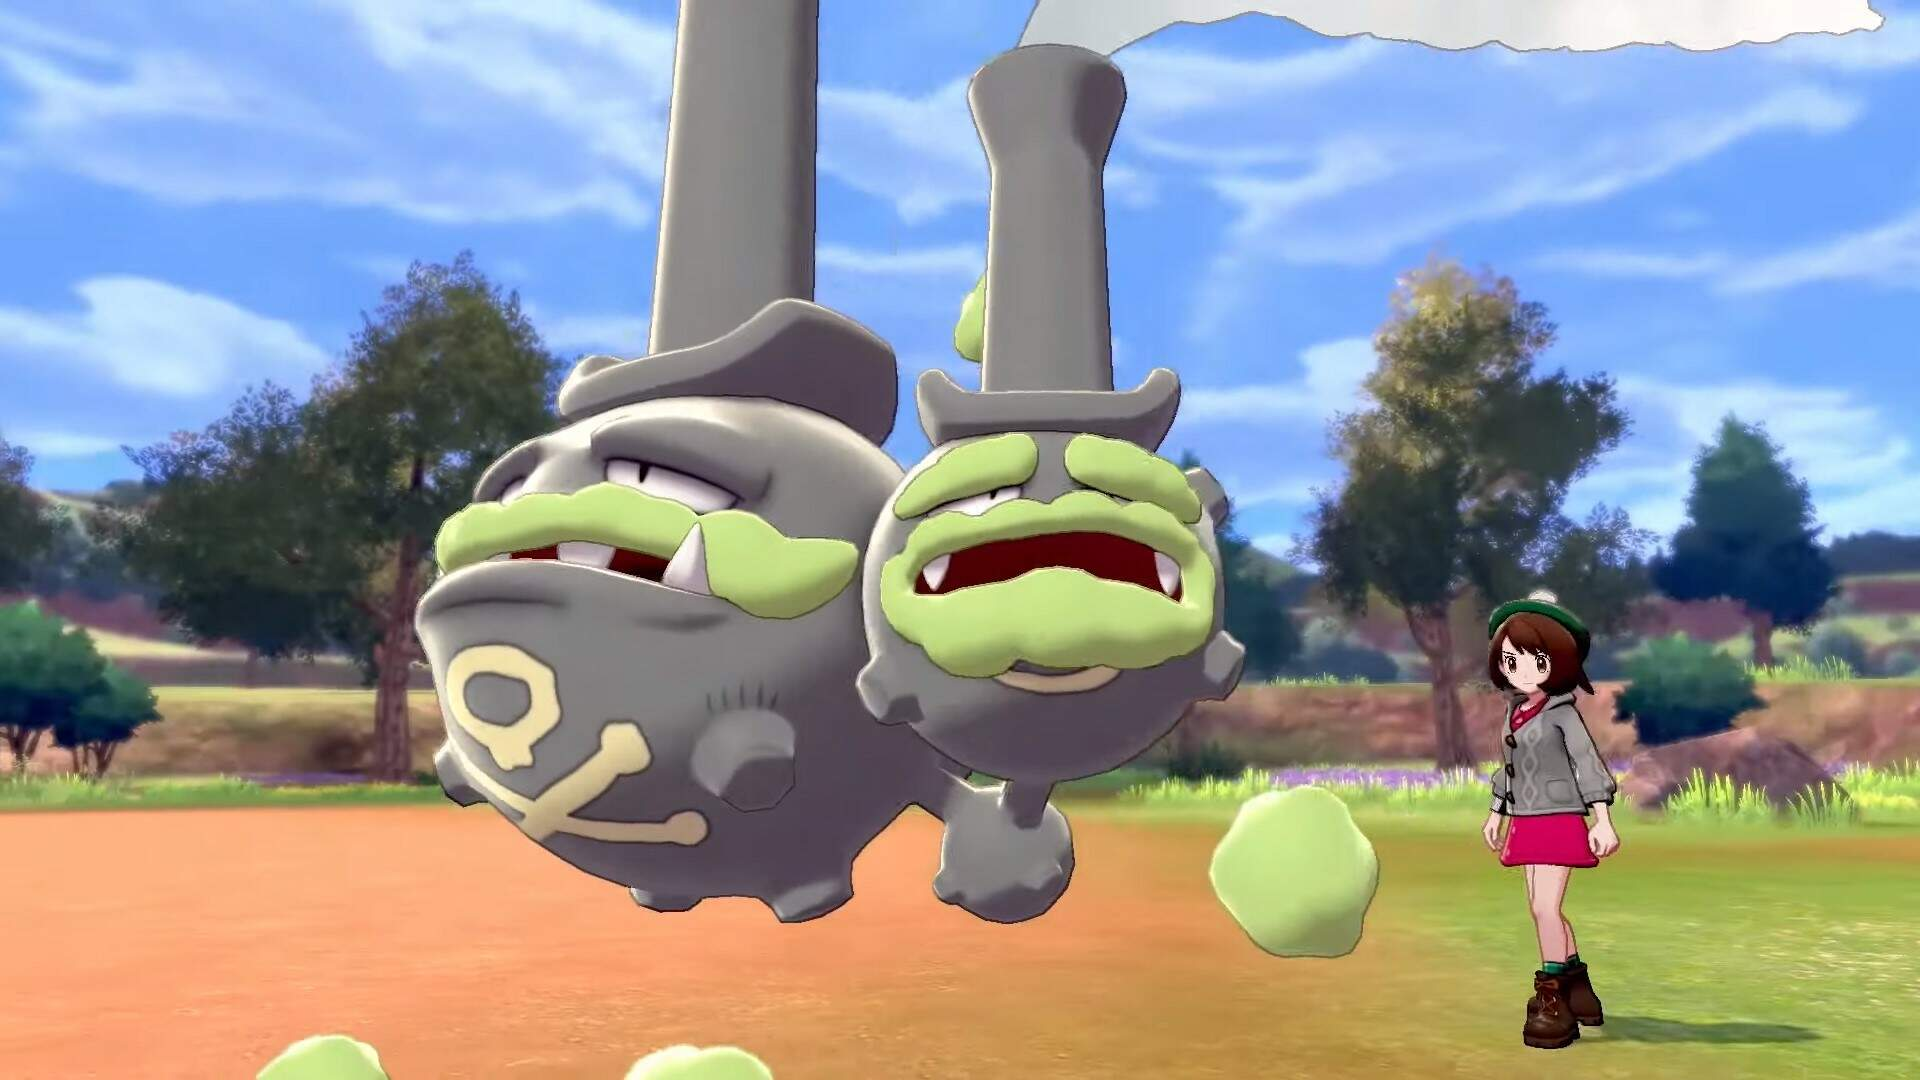 Pokemon Sword and Shield are Already Smashing Series and Switch Sales Records